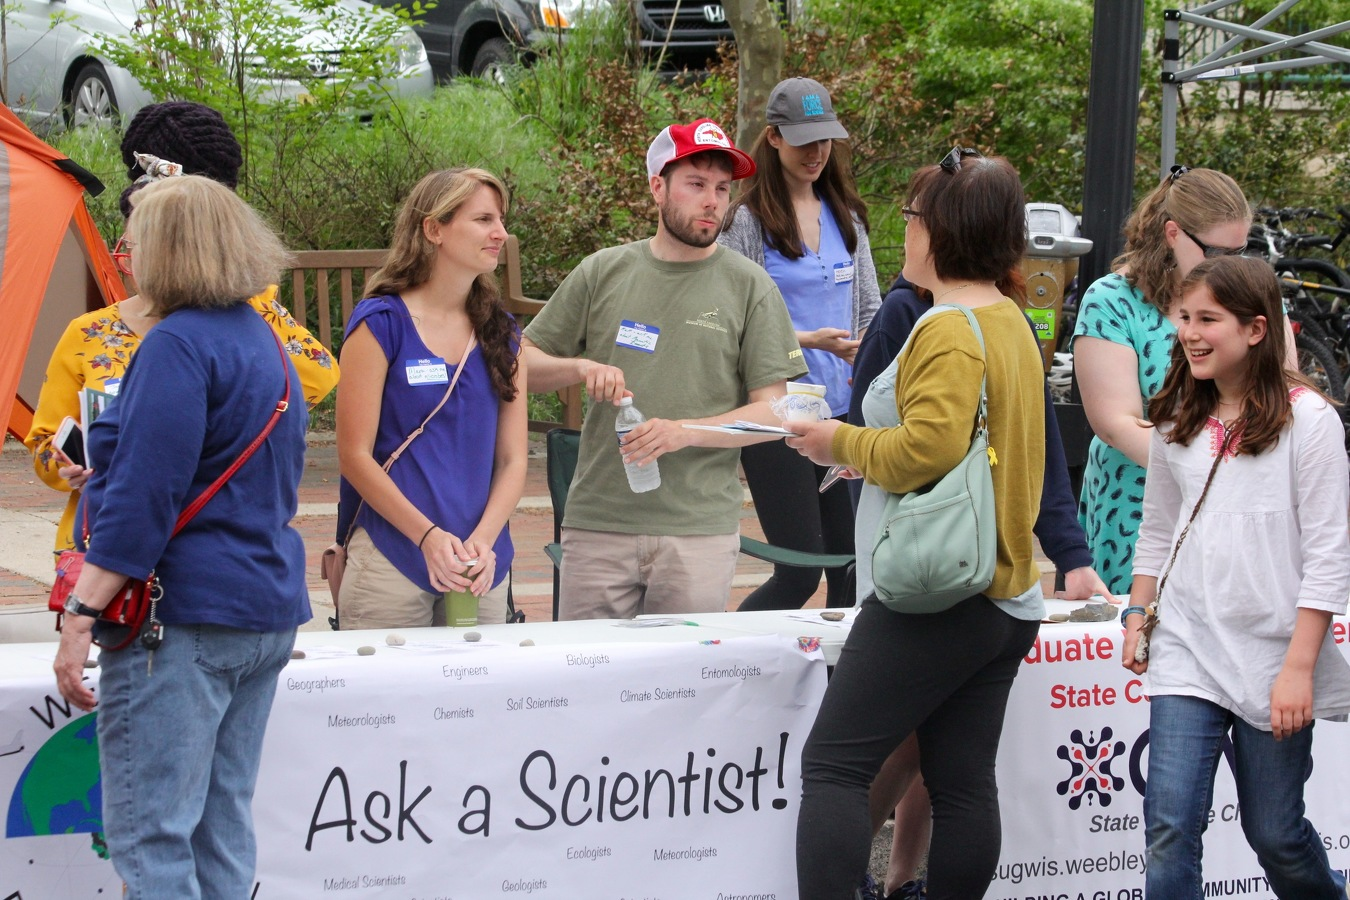 State College, PA - People's Climate Day Mixes ...